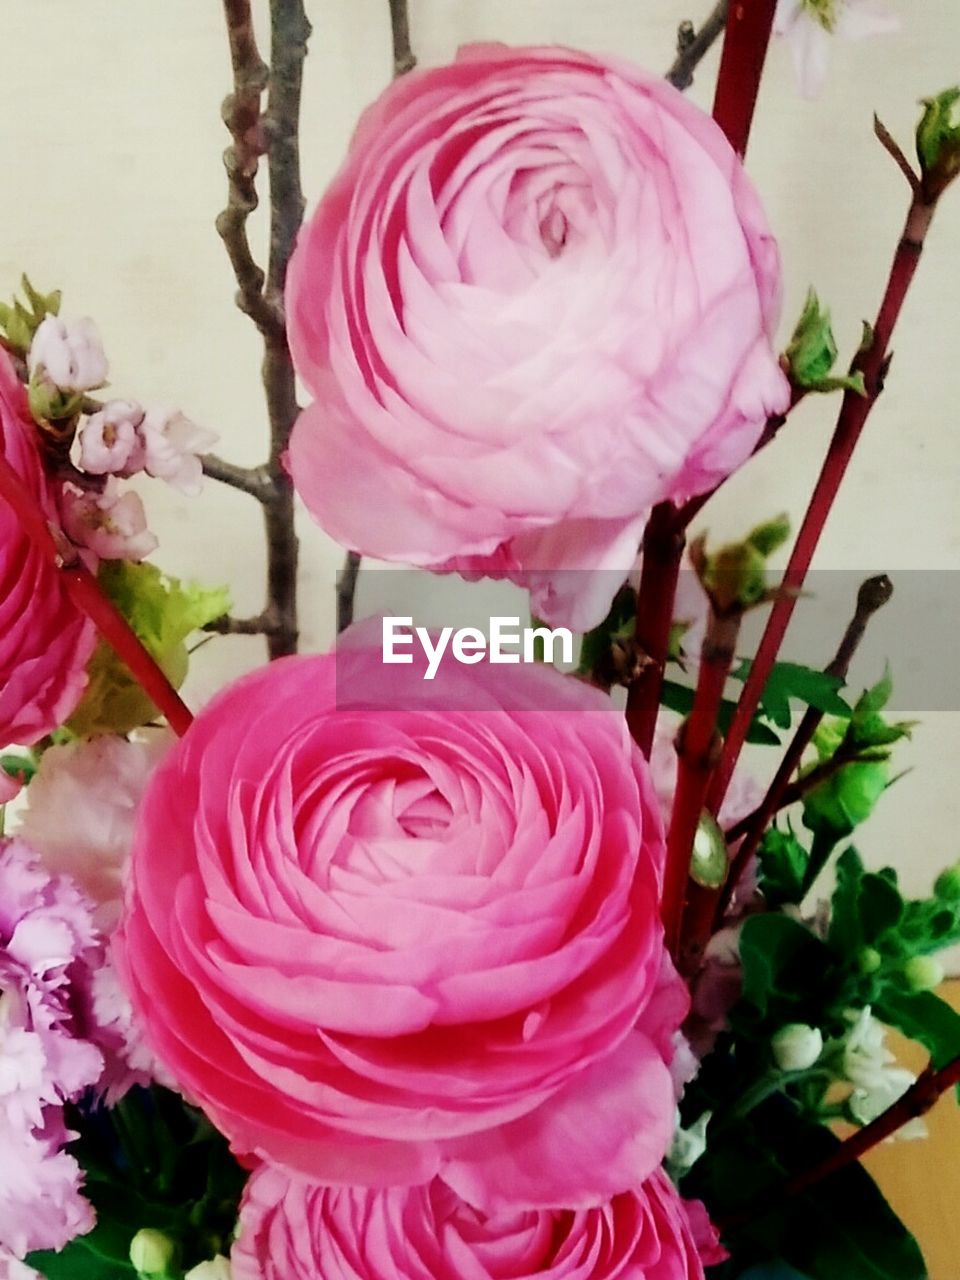 flower, fragility, beauty in nature, petal, growth, freshness, nature, flower head, rose - flower, pink color, no people, blossom, plant, close-up, day, springtime, outdoors, blooming